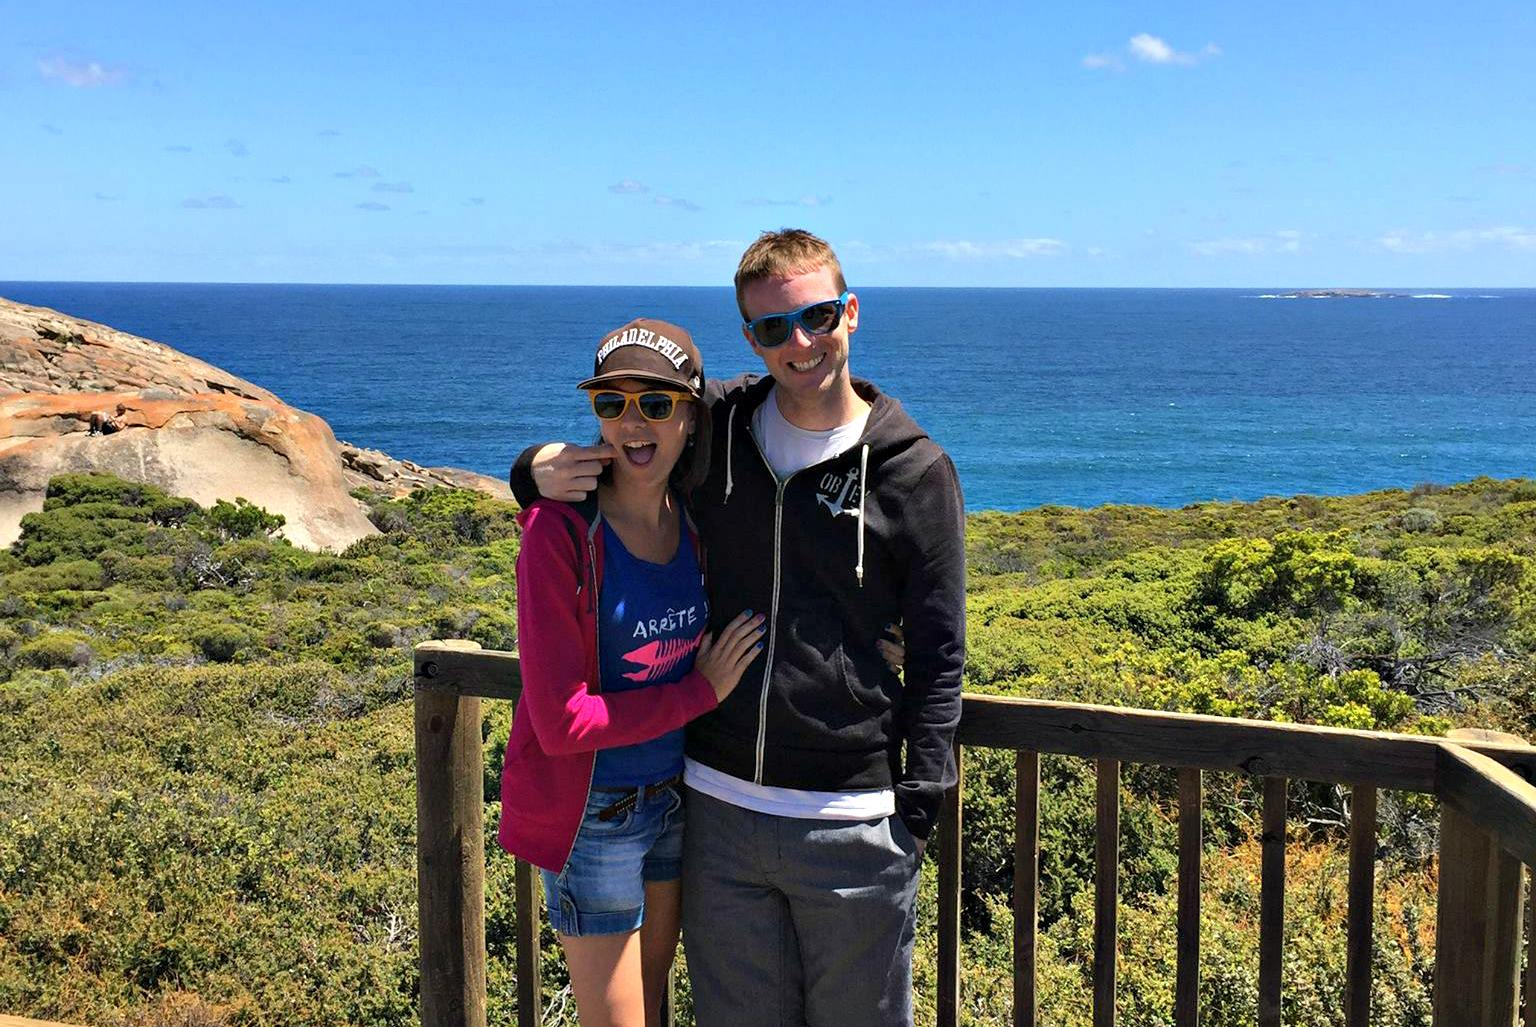 Expat Interview: The Frenchie Who Moved to Adelaide